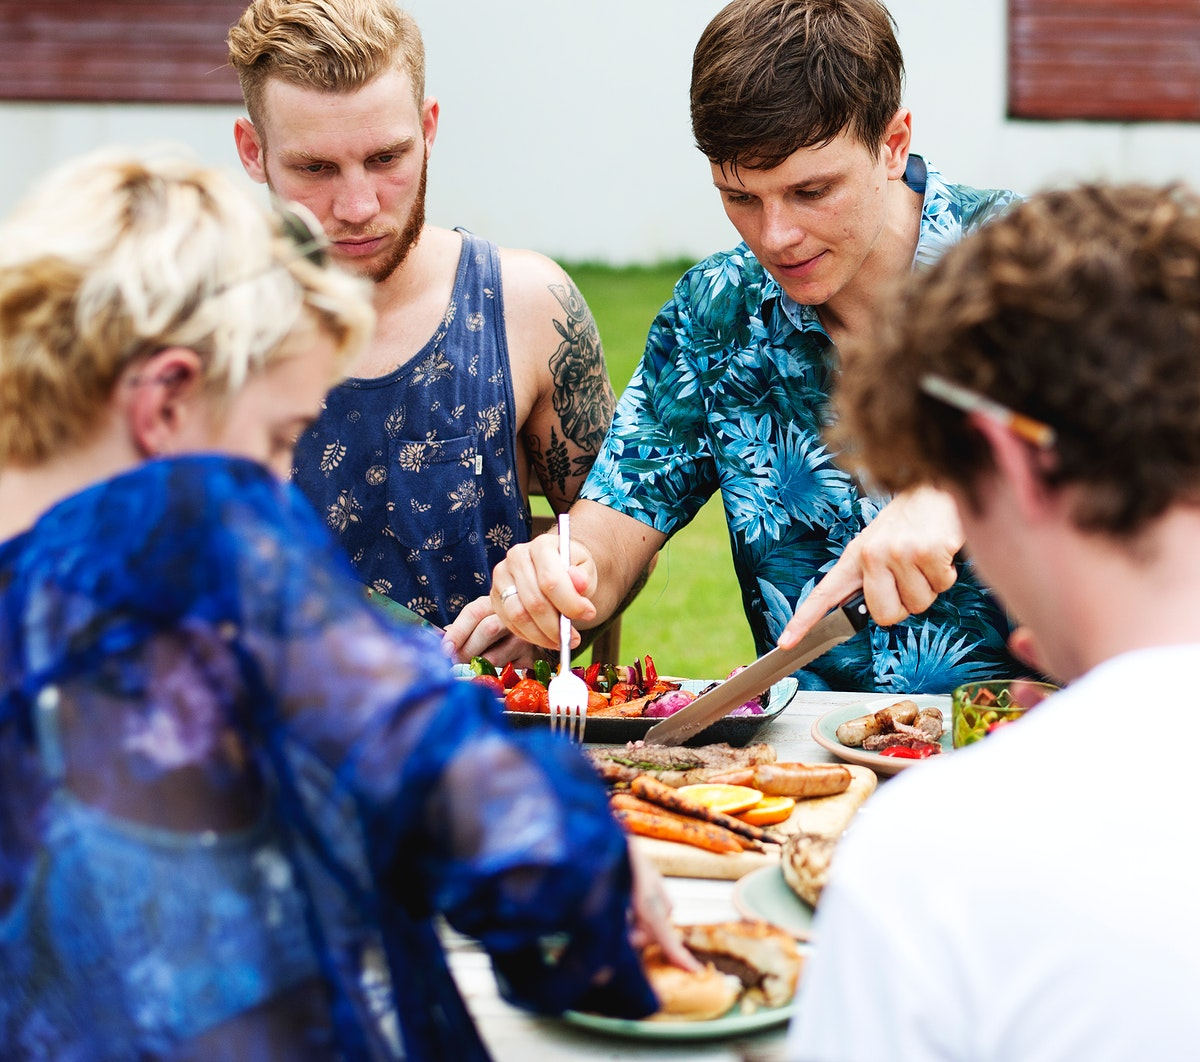 Summer time barbecue party outdoors